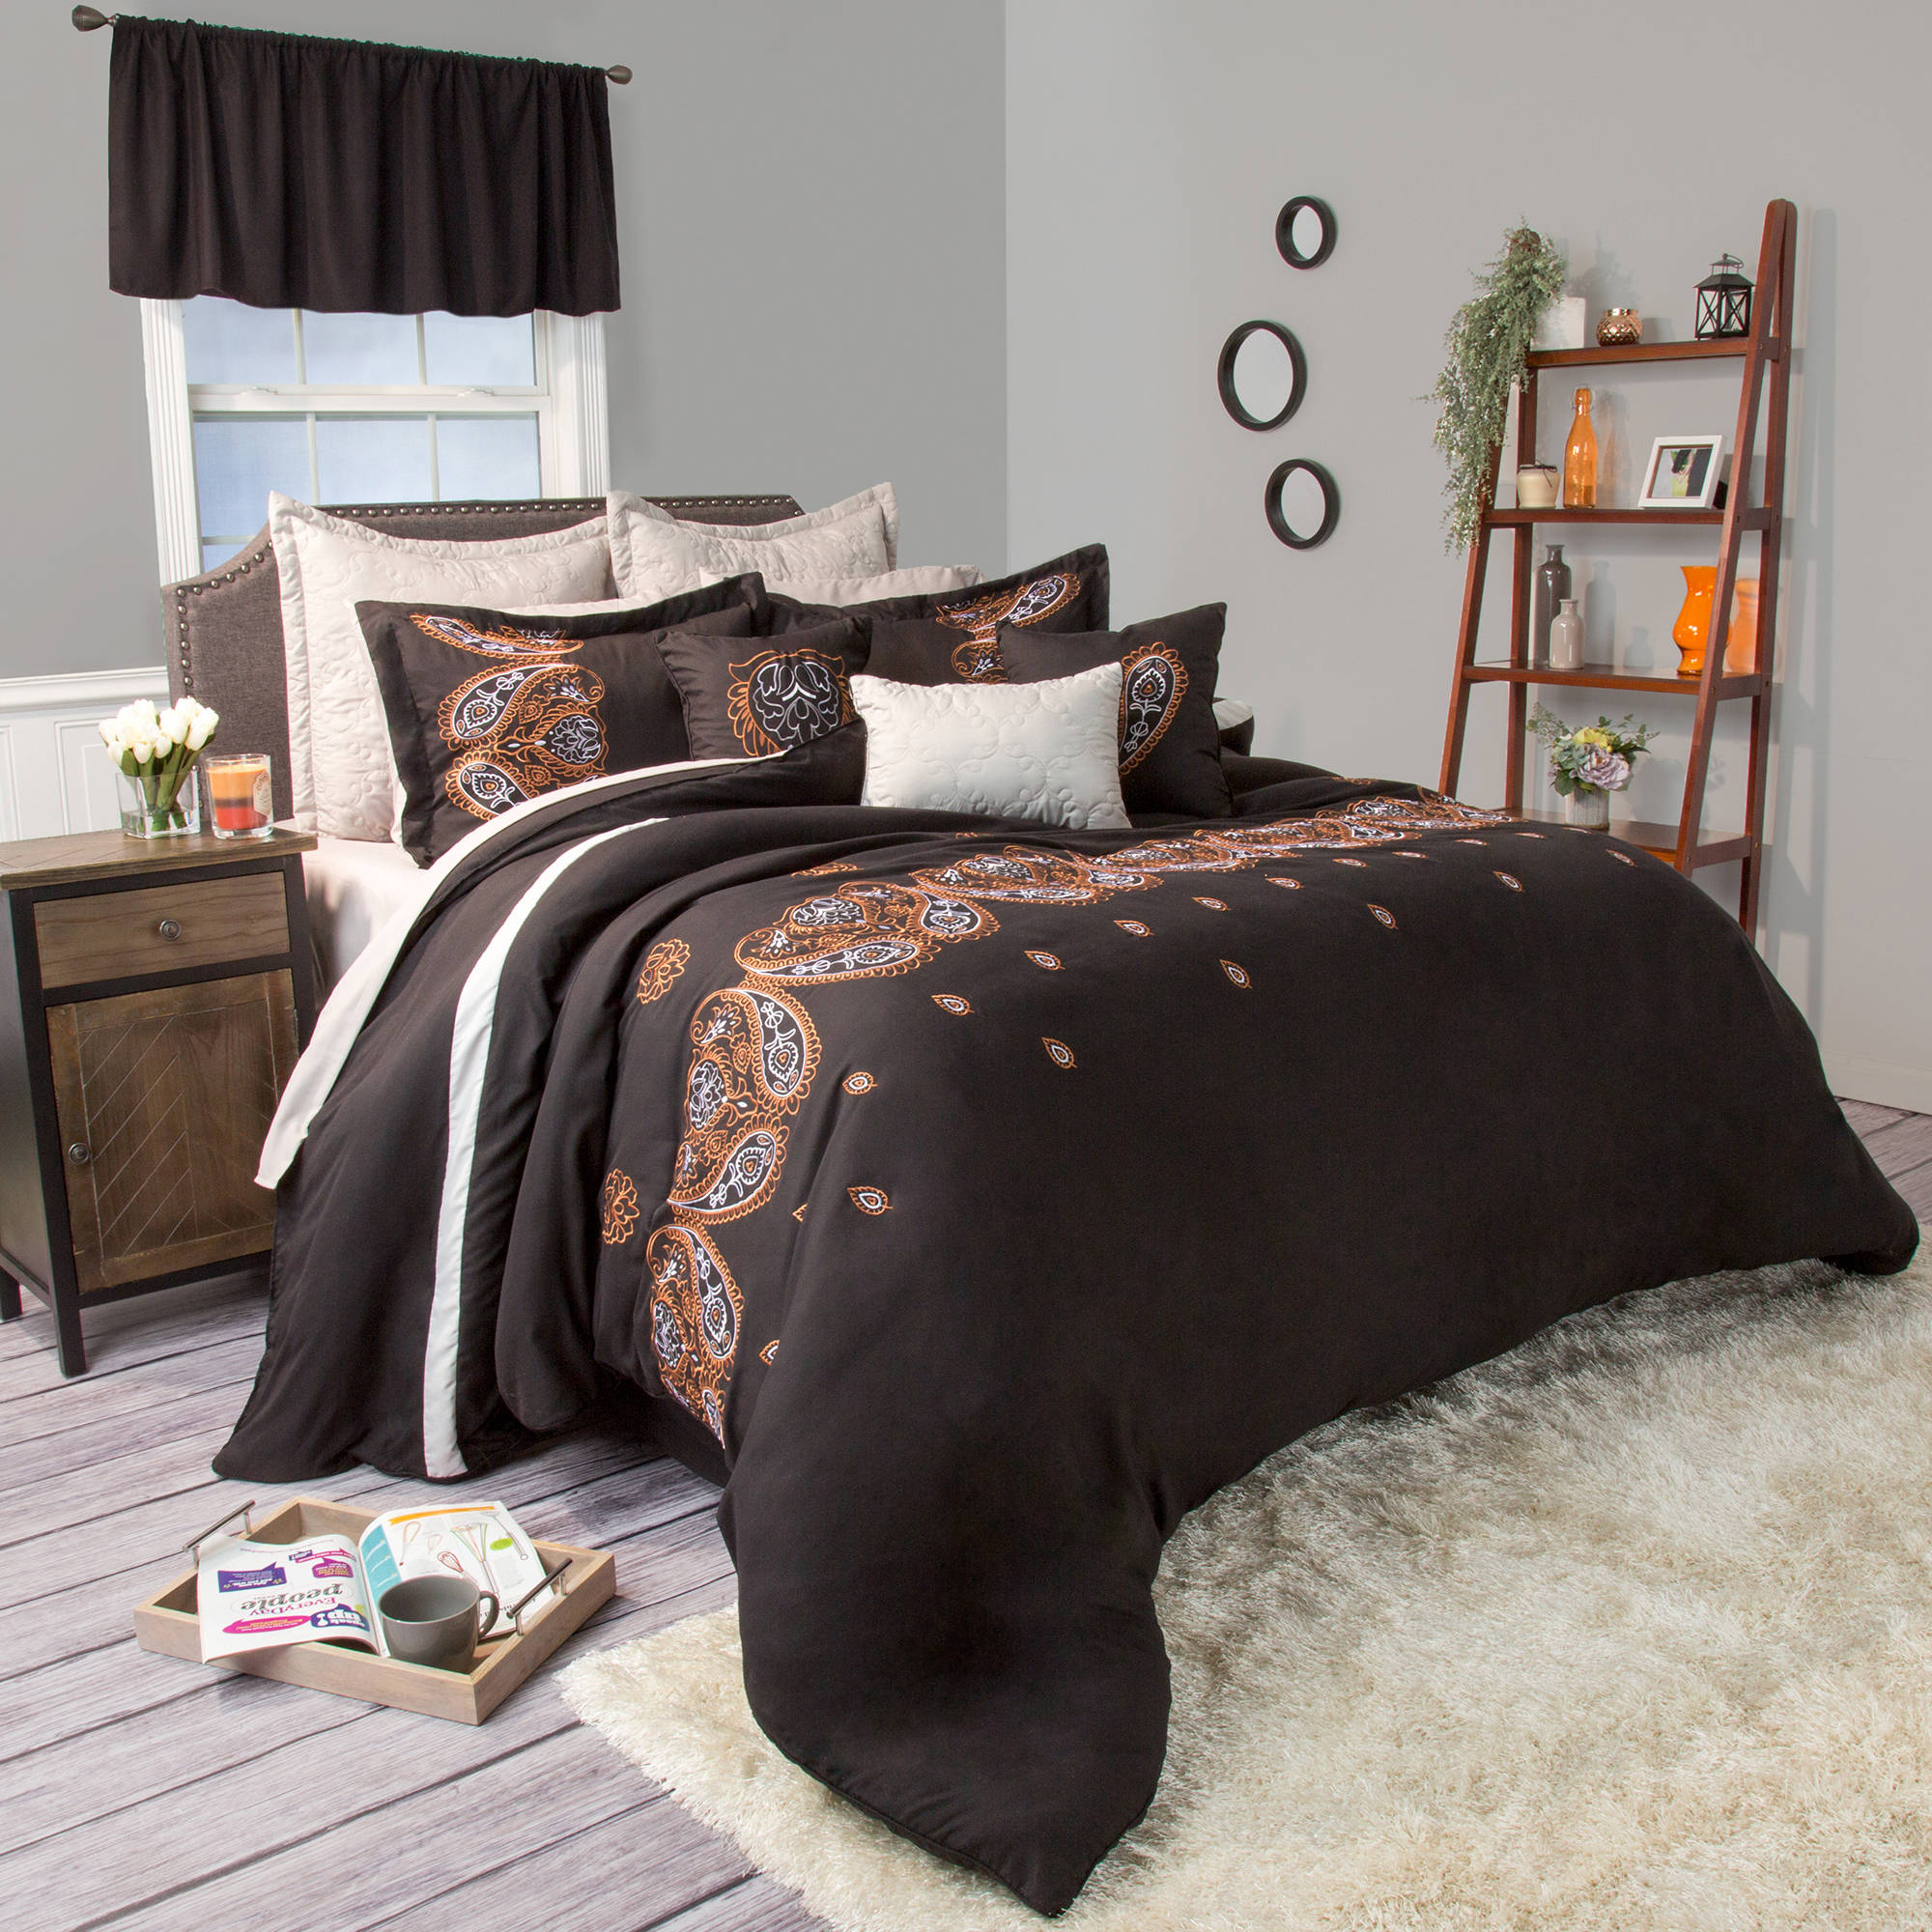 Somerset Home Ashley 17-18 Piece Bedding Comforter Set